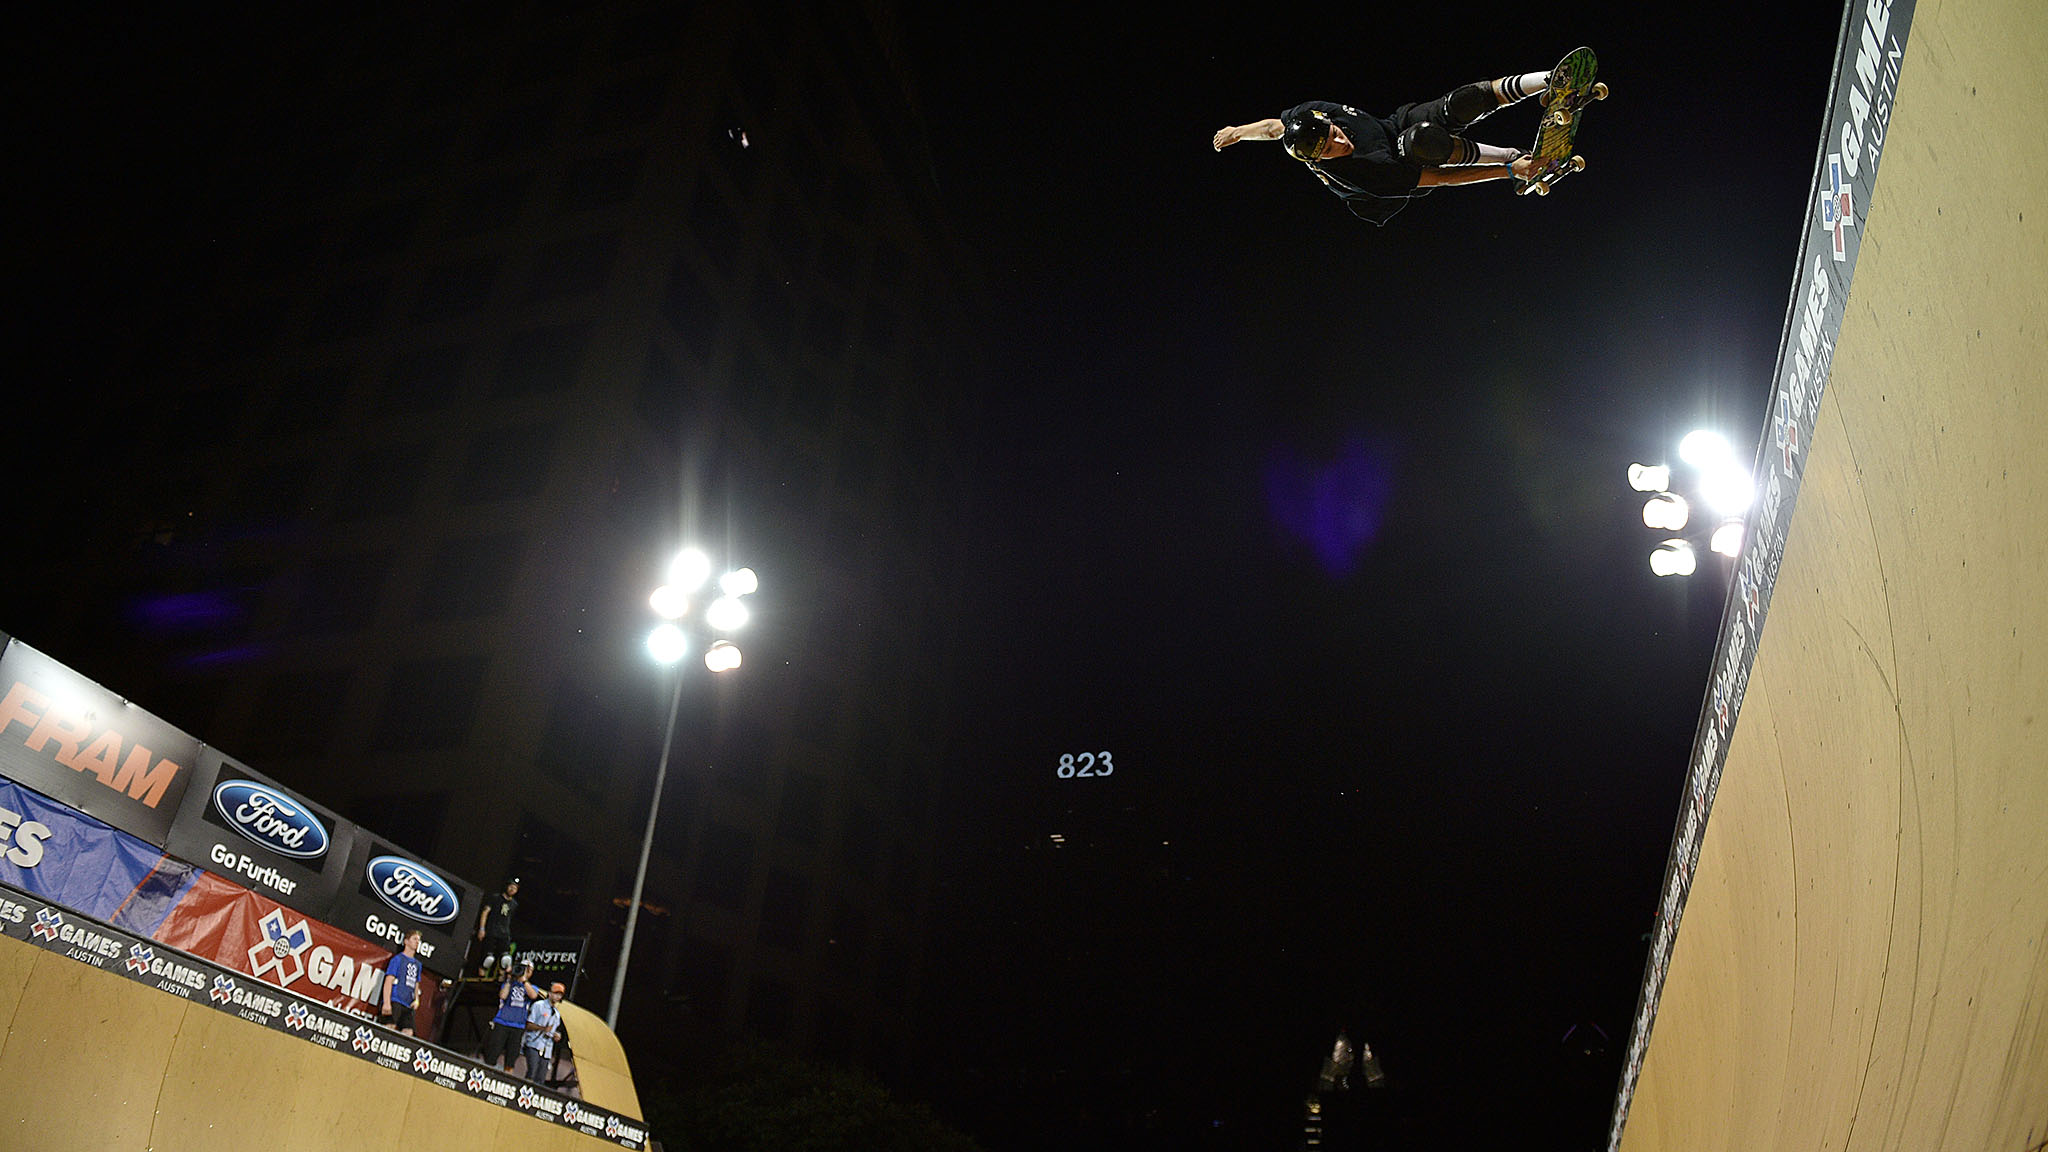 Jimmy Wilkins, 20, won his first X Games gold and became the youngest Vert gold medalist ever.